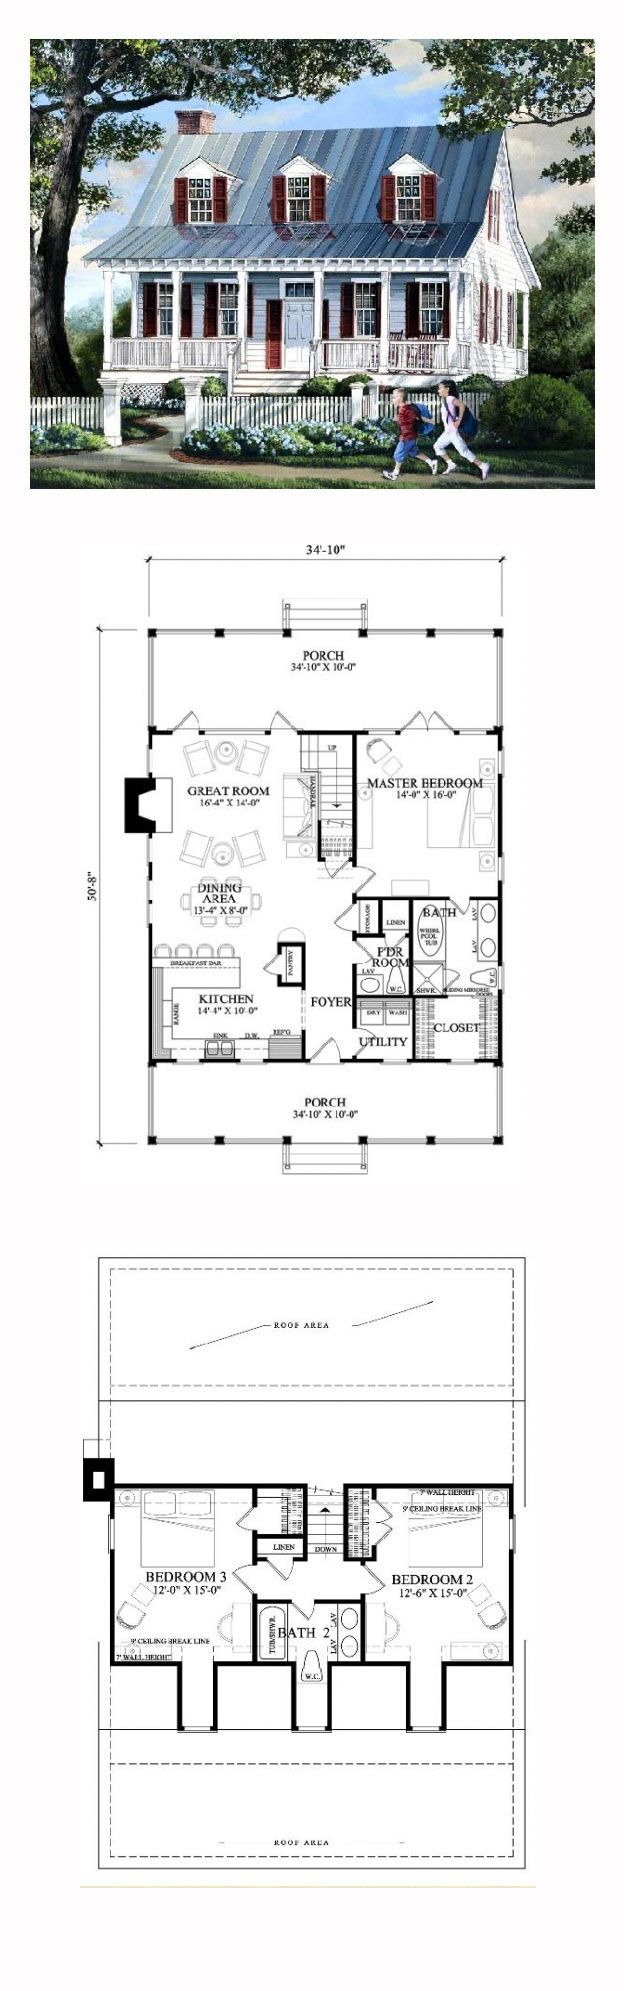 113 best floor plans images on pinterest dream houses floor cool house plans offers a unique variety of professionally designed home plans with floor plans by accredited home designers styles include country house